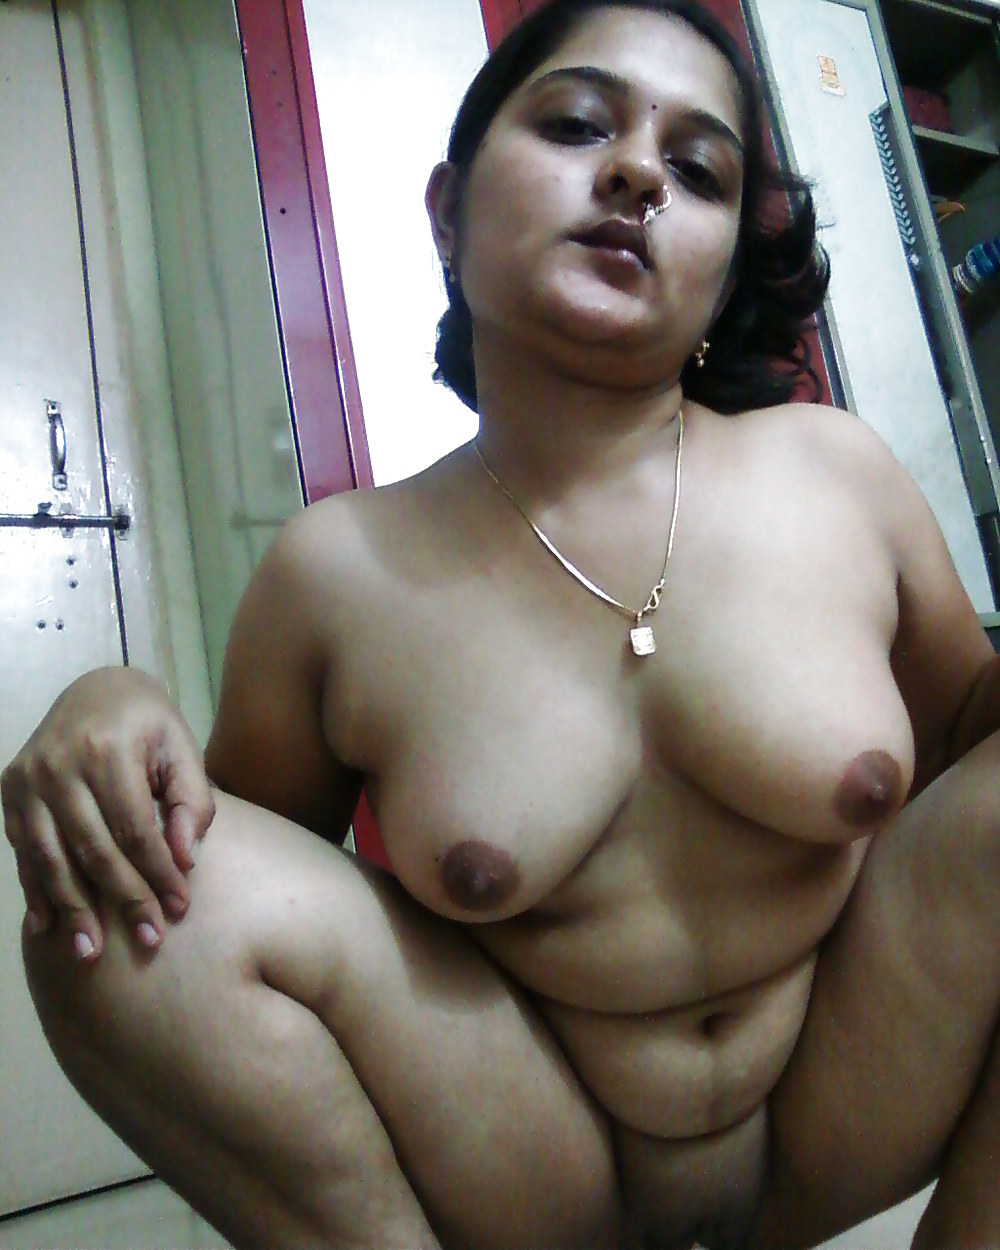 Indian ugly aunty nude pics indian ugly girl porn #12